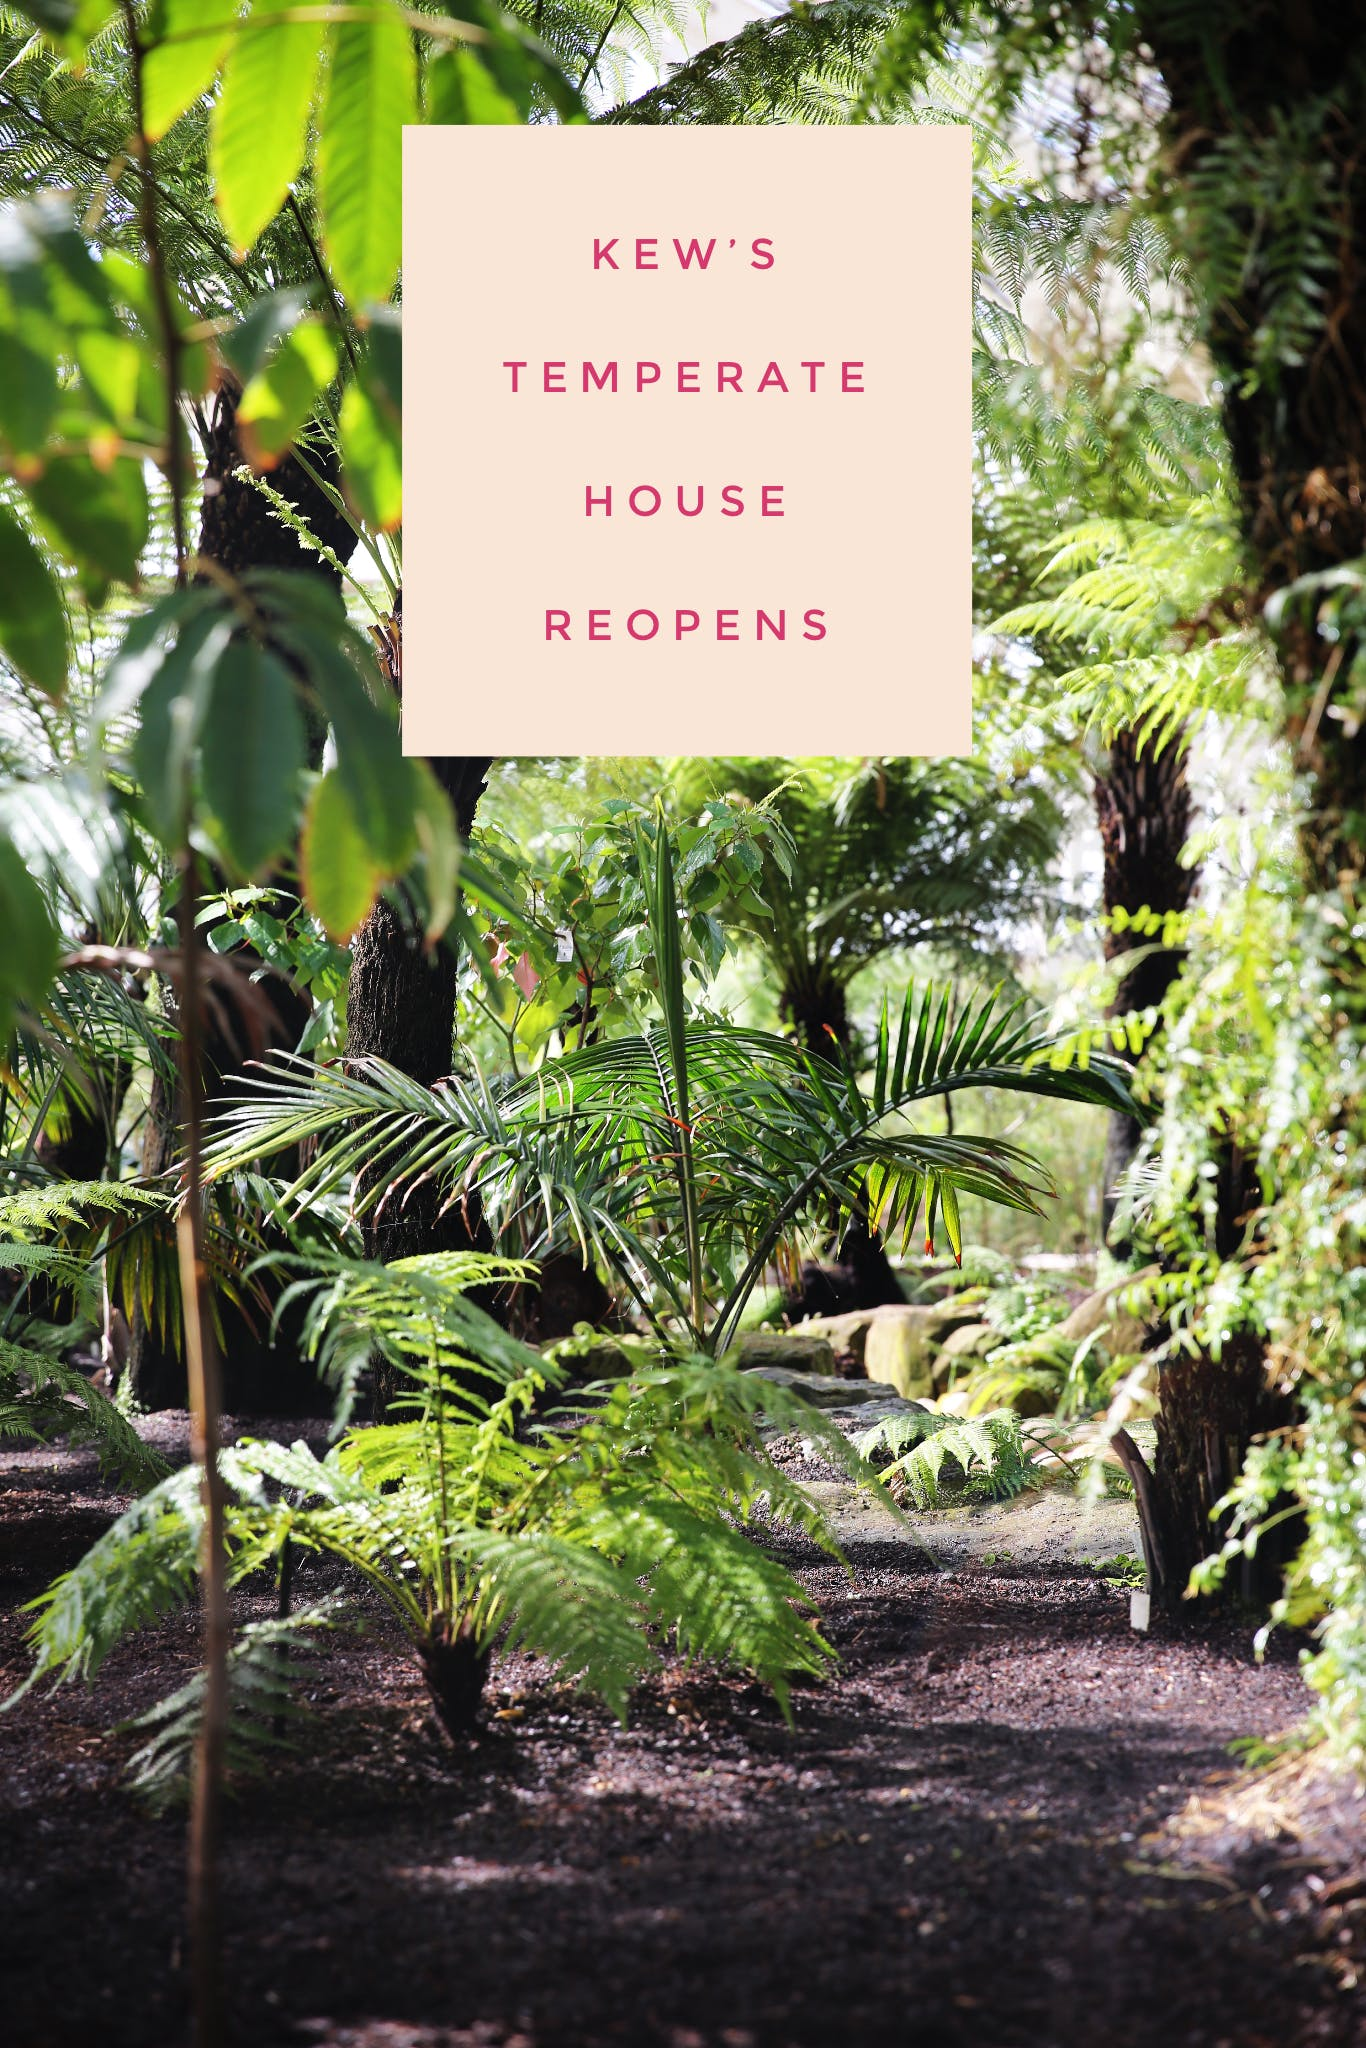 Last week I had the pleasure of attending the press day for the opening of Kew's Temperate House